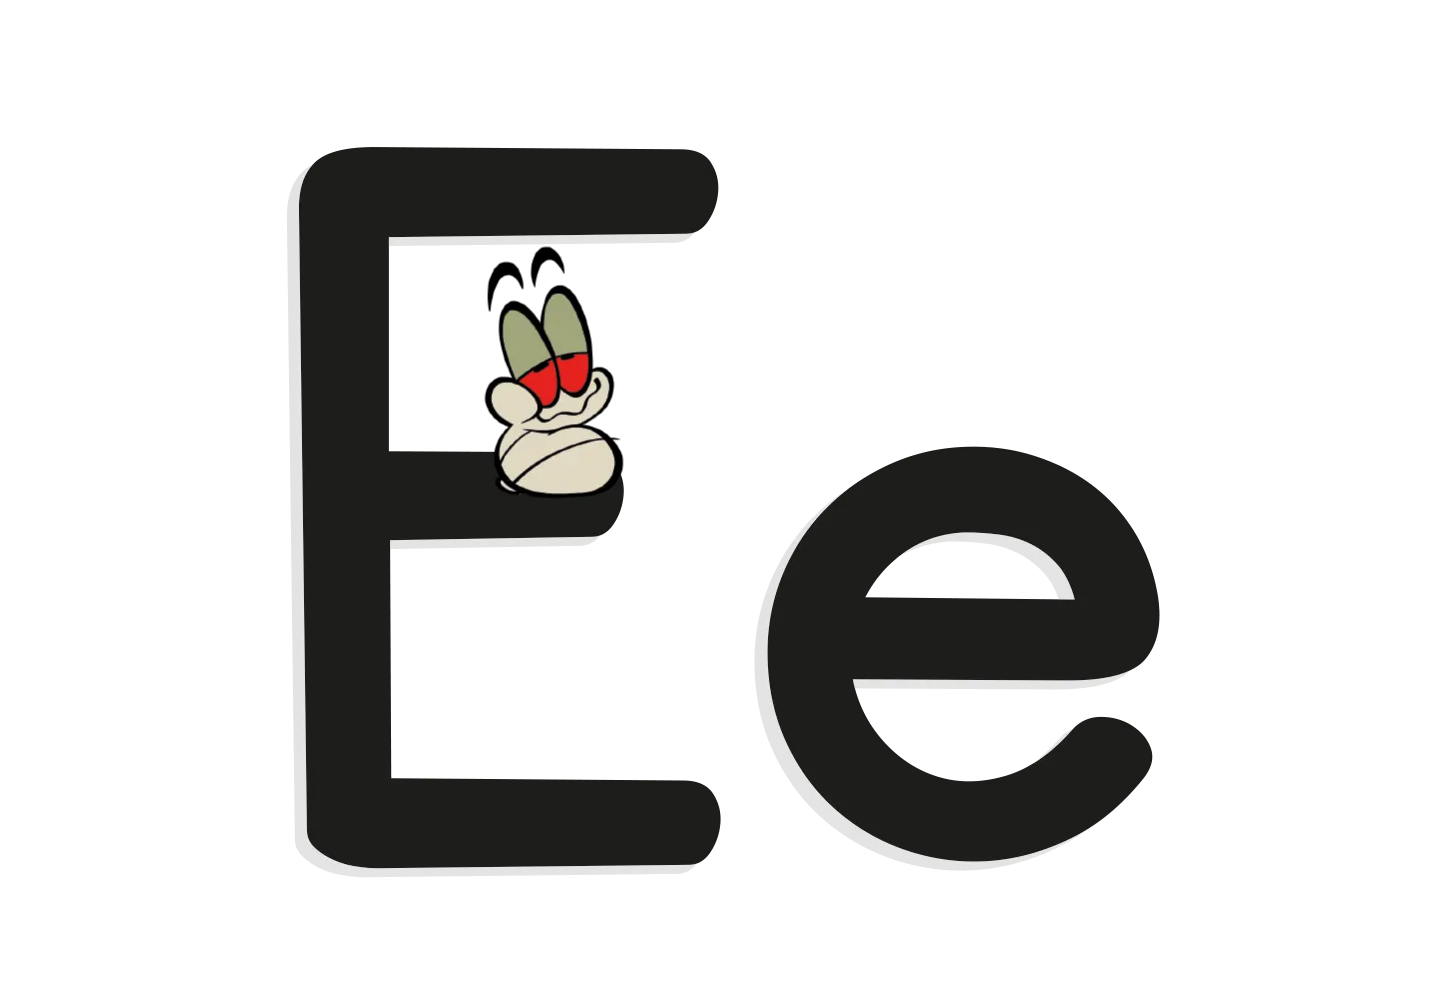 The letter E with an illustrated worm